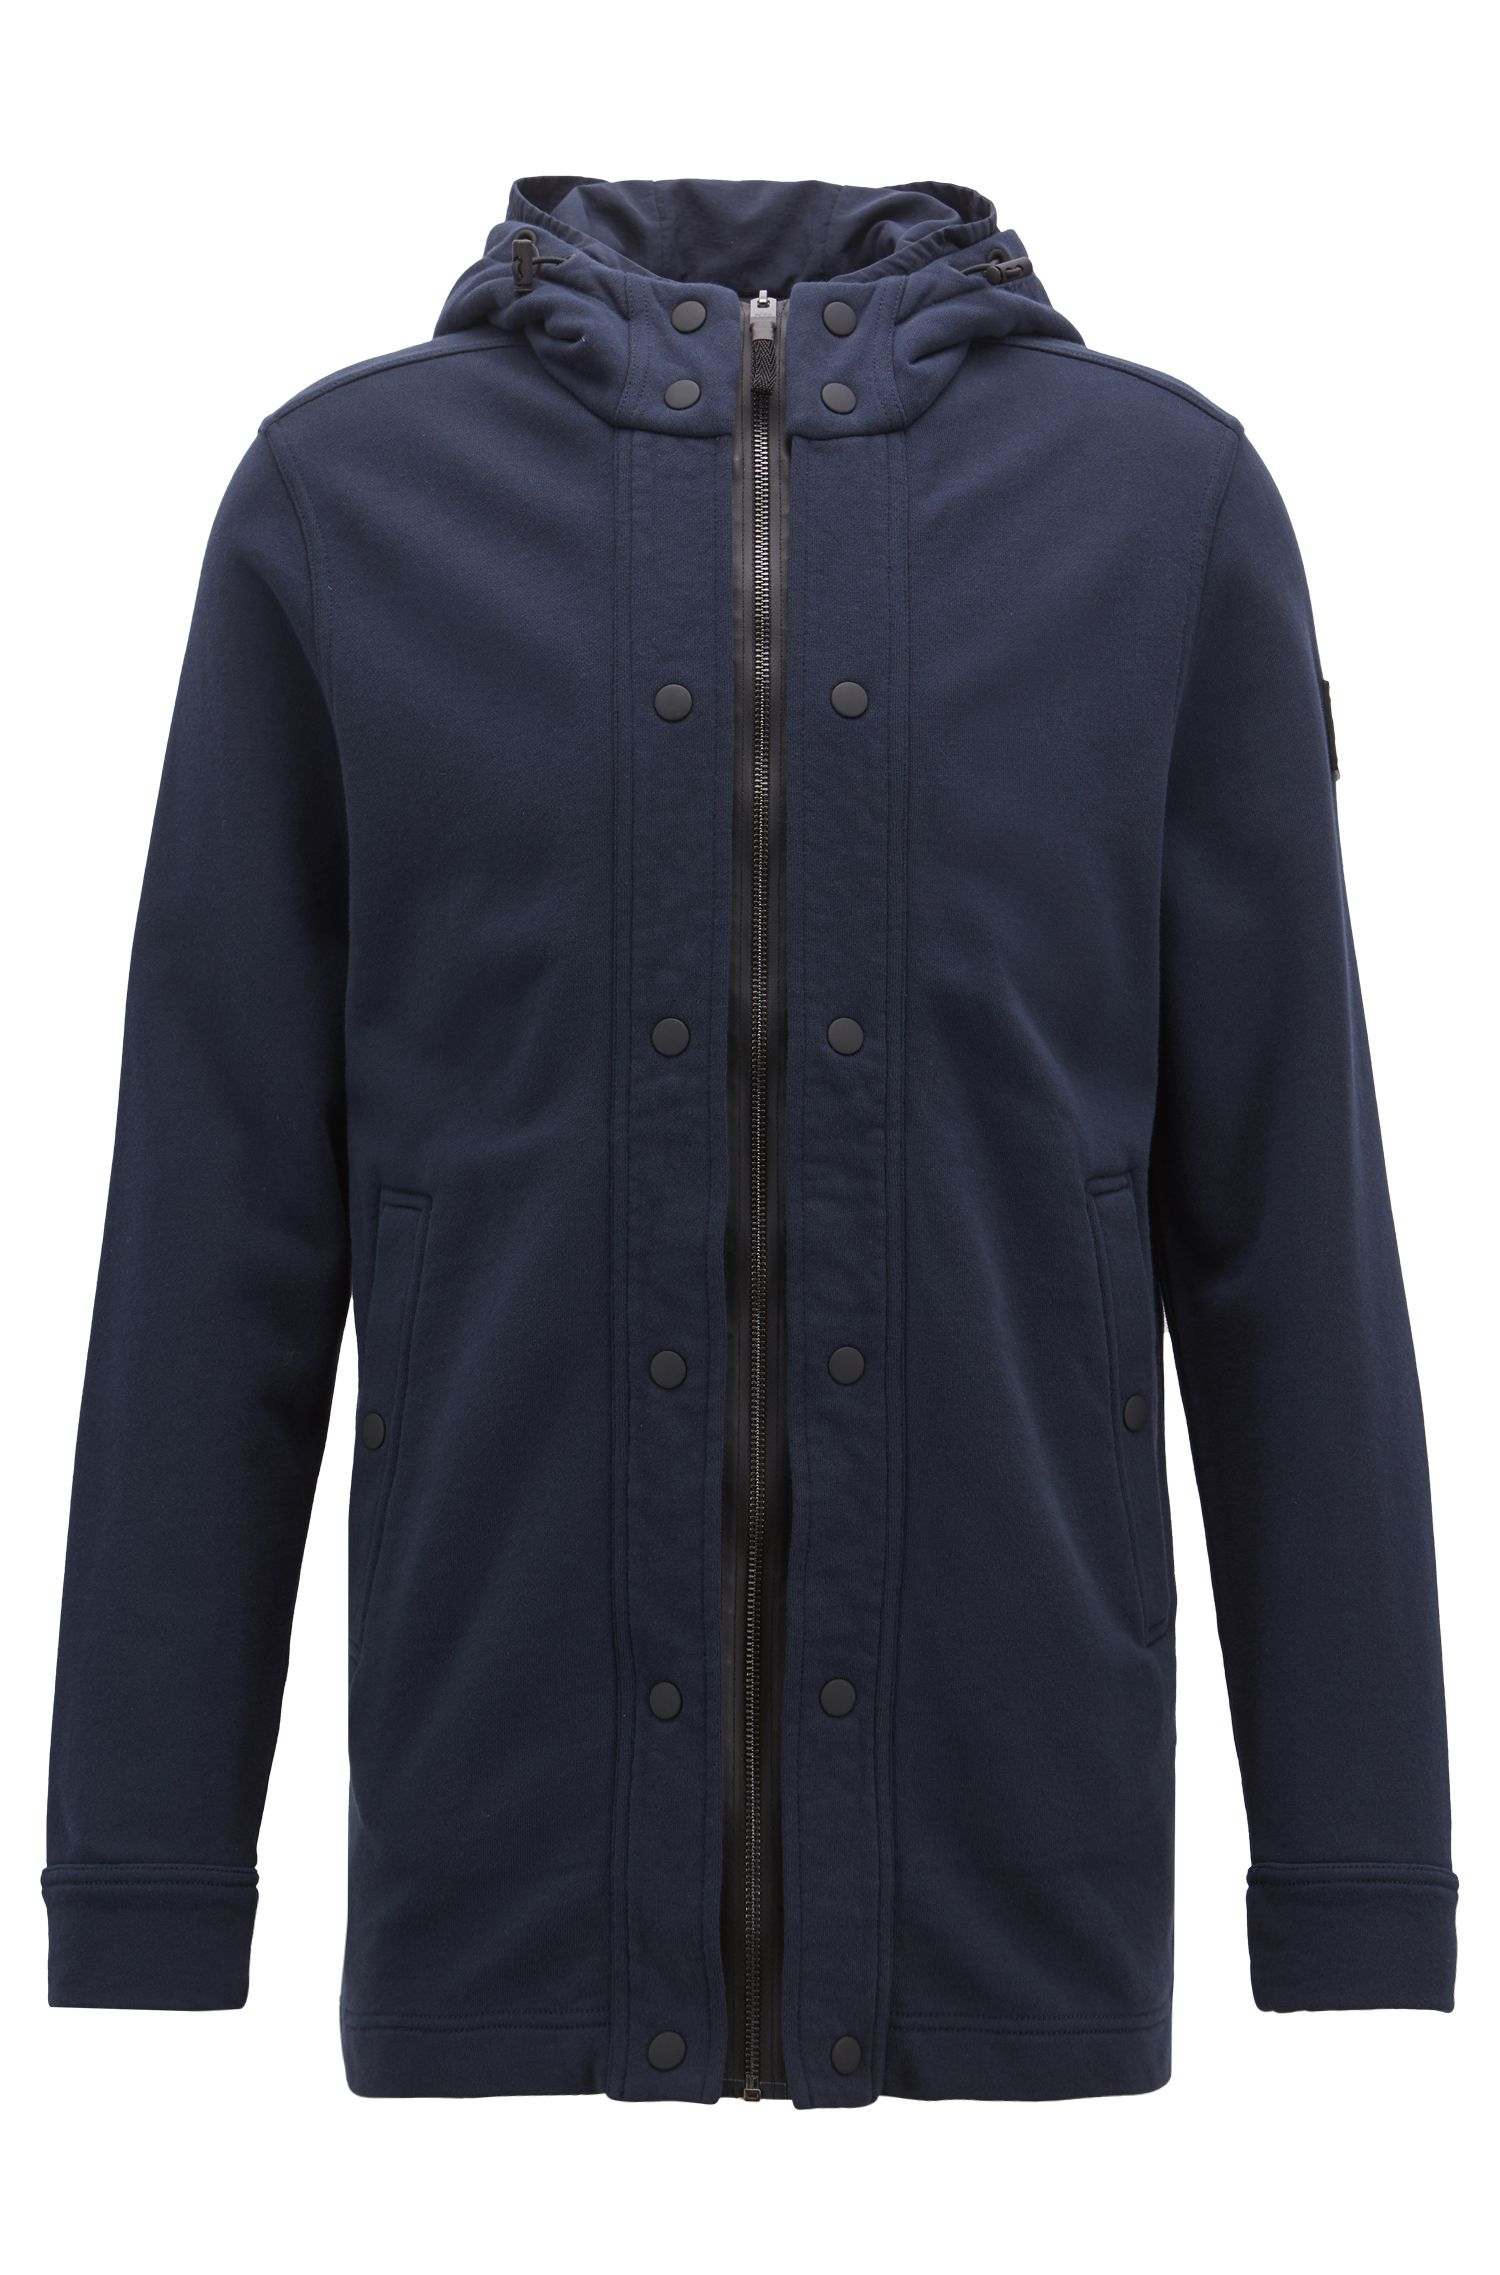 Veste Relaxed Fit en molleton French Terry à capuche double, Bleu foncé